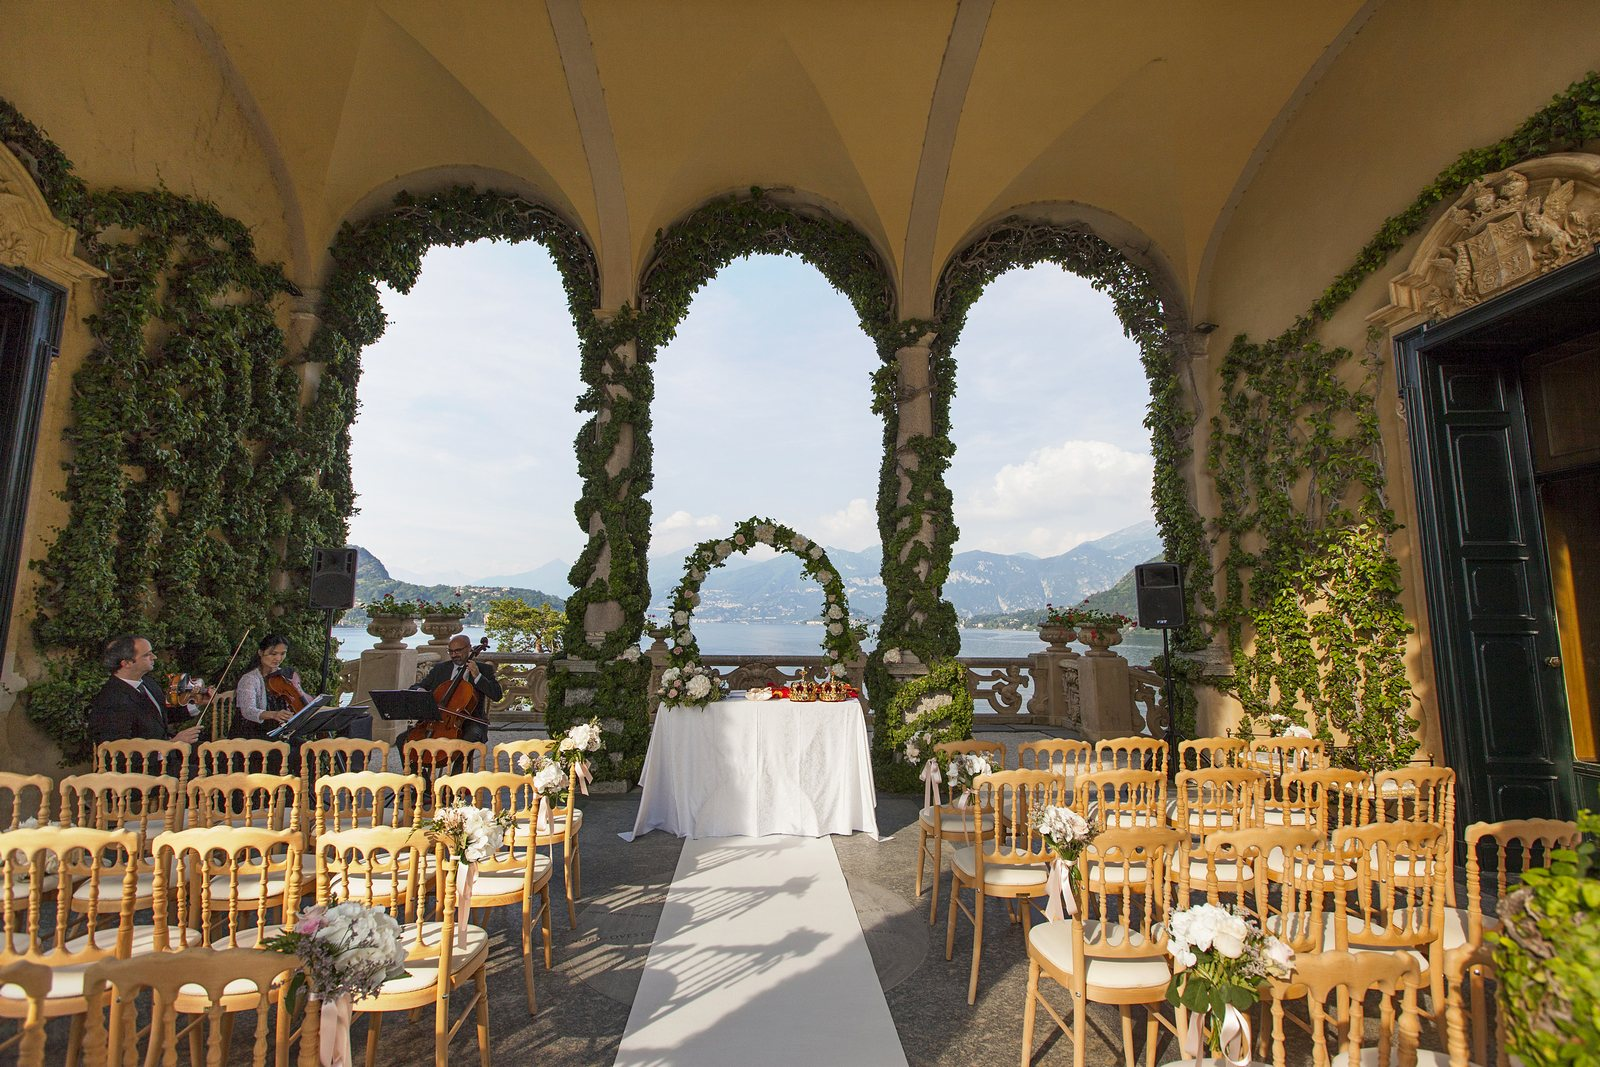 Ceremony in Villa Balbianello